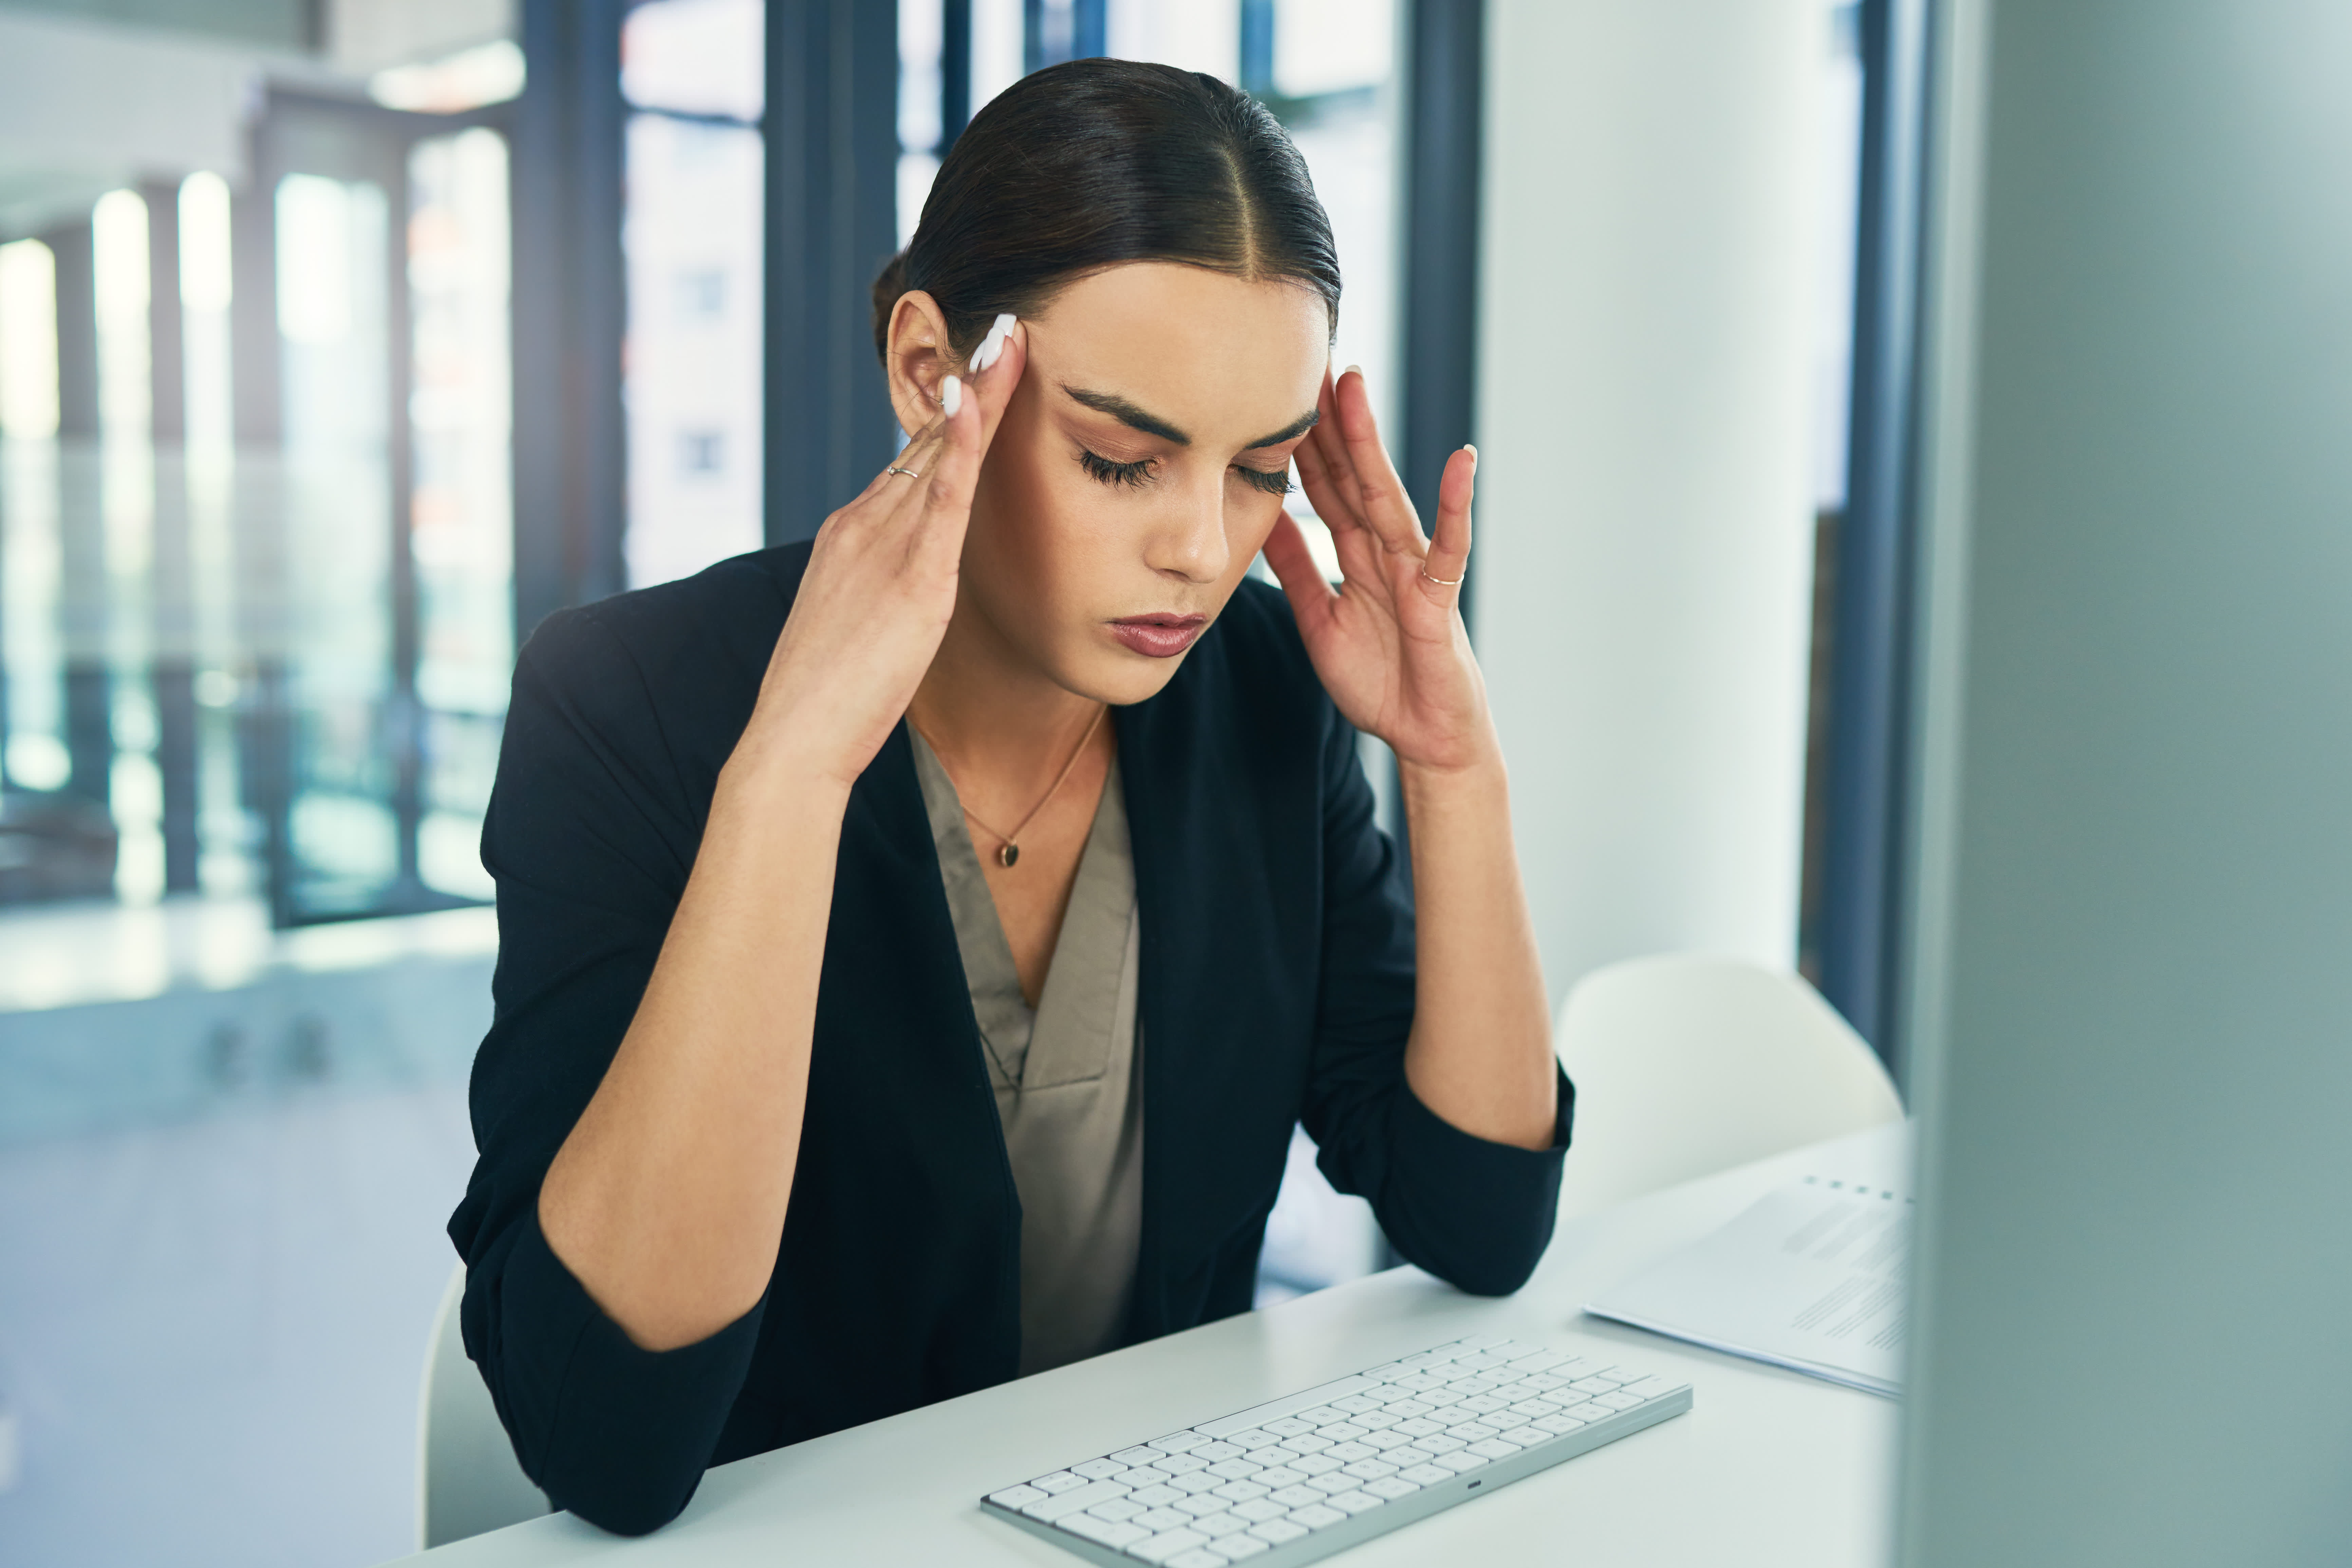 US firms aim to fight workplace stress amid rise of employee burnout